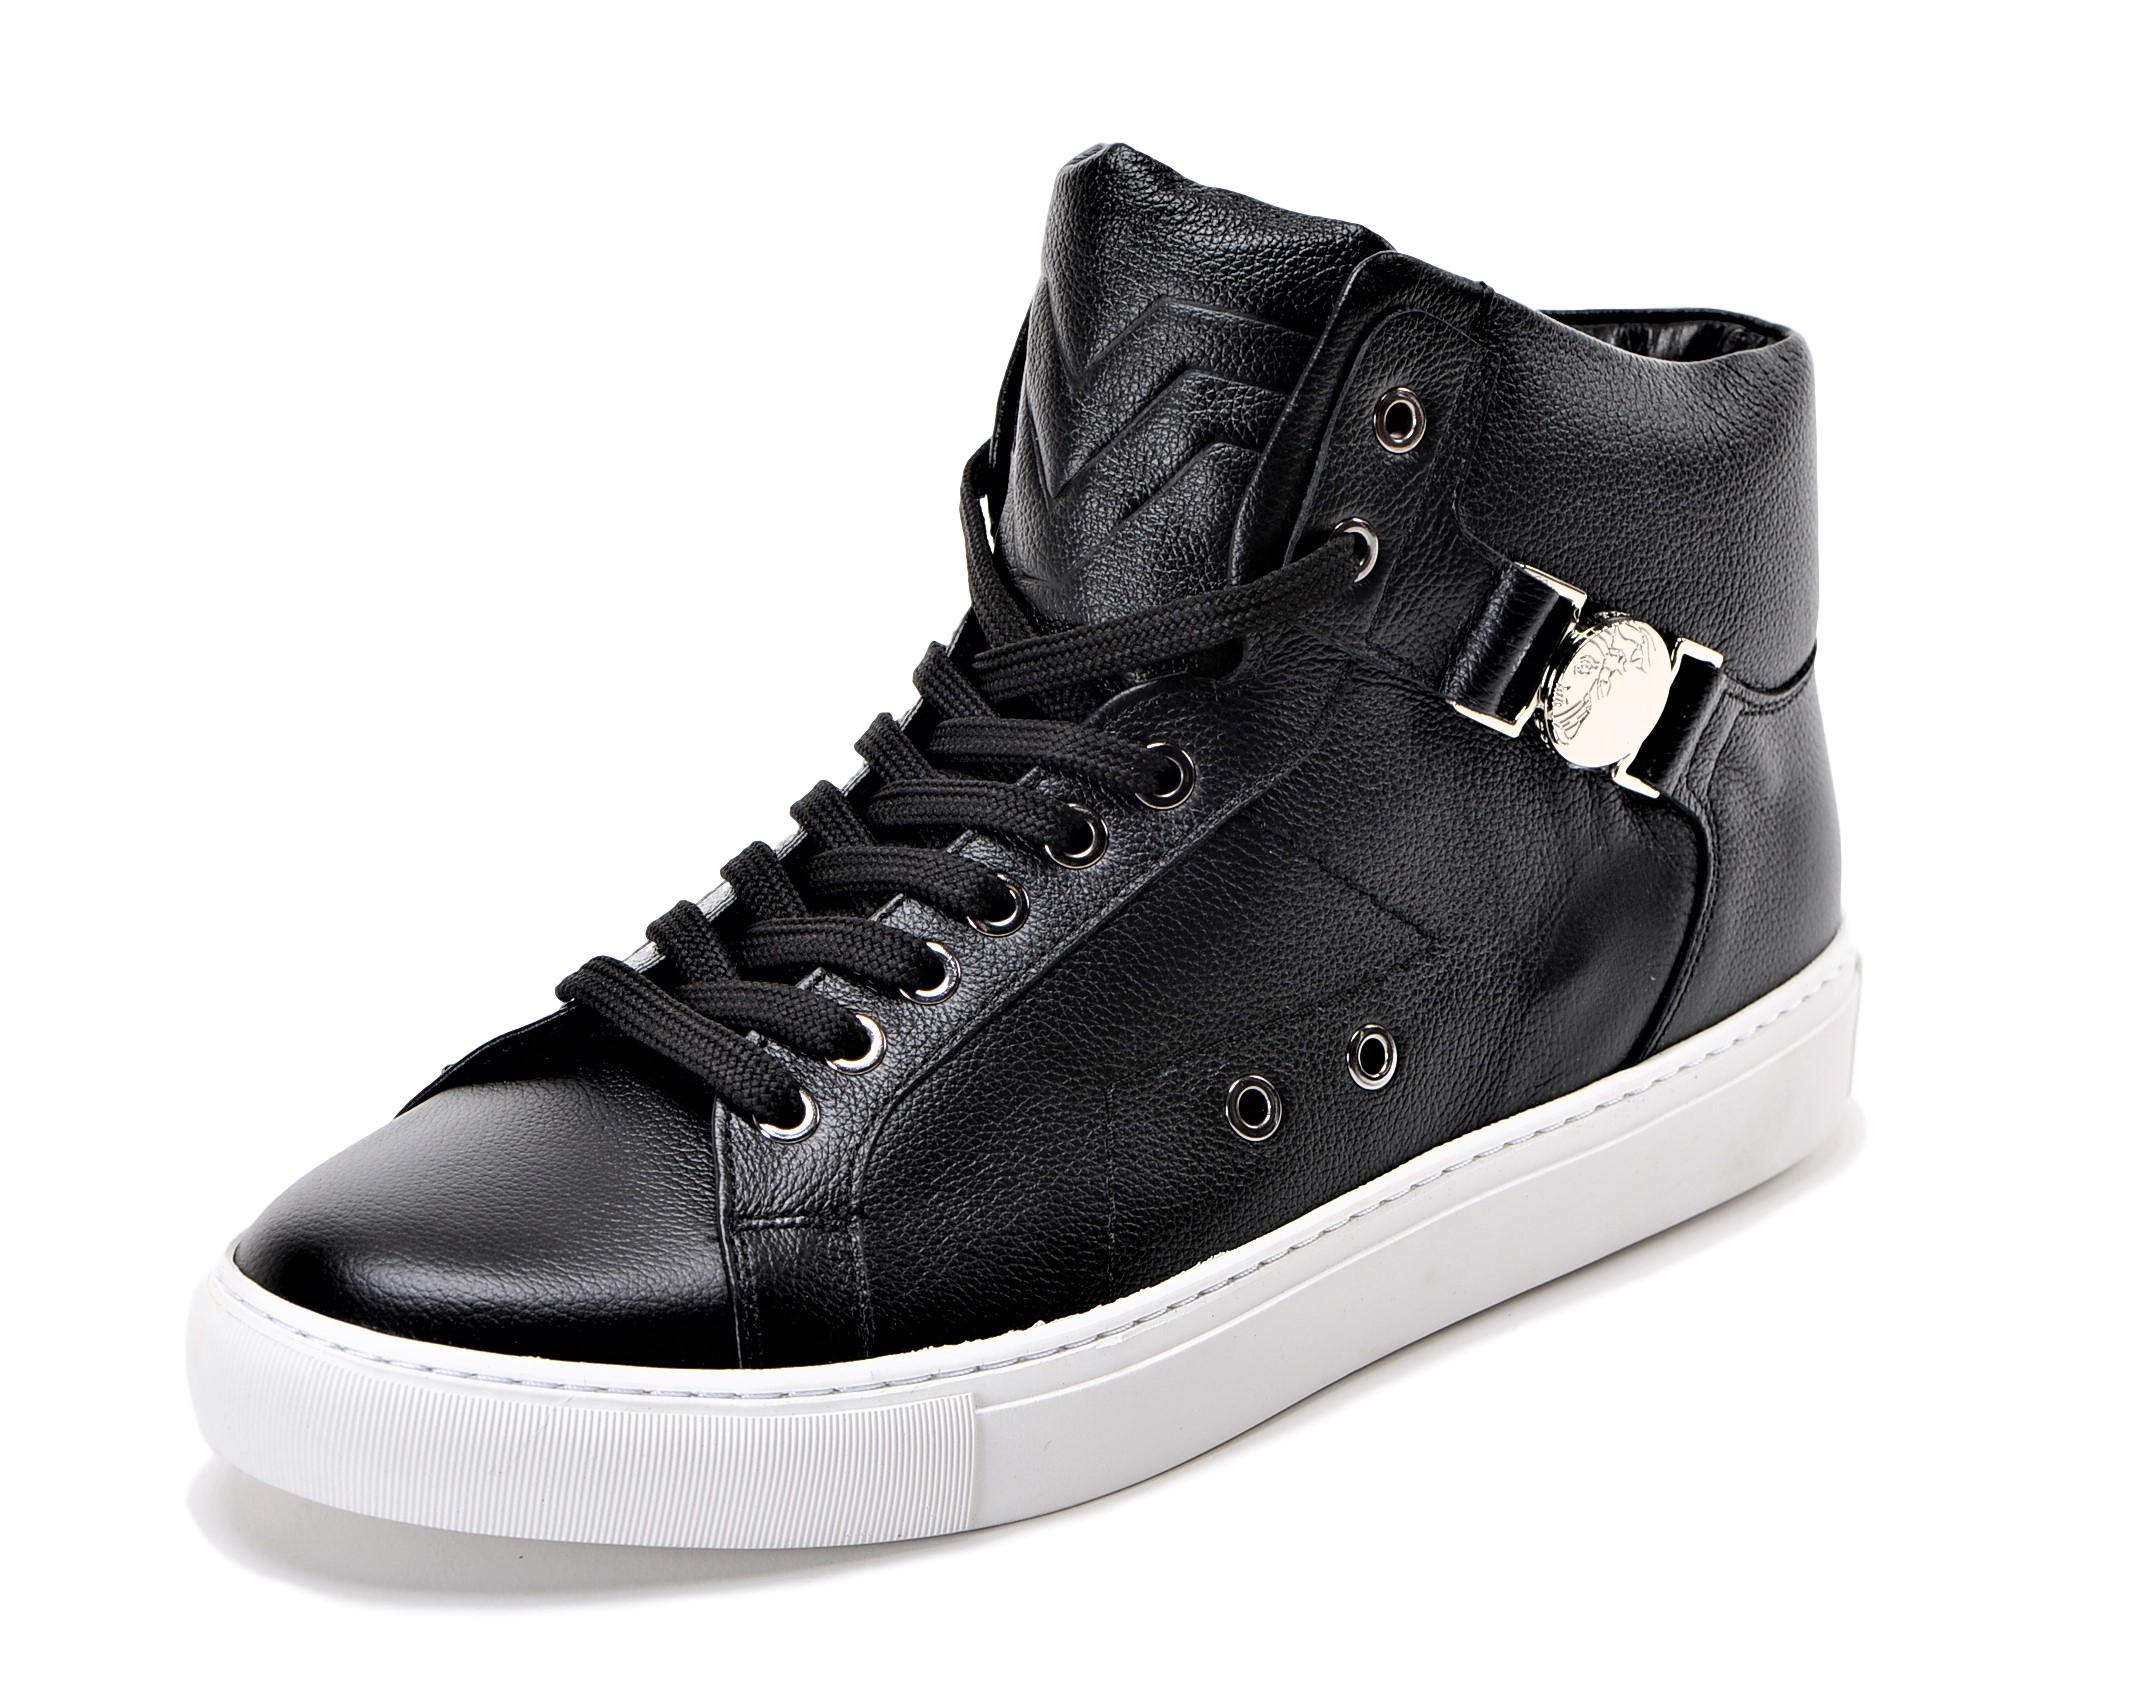 Details about Versace Collection Half Medusa Mens Leather High Top Sneaker Black